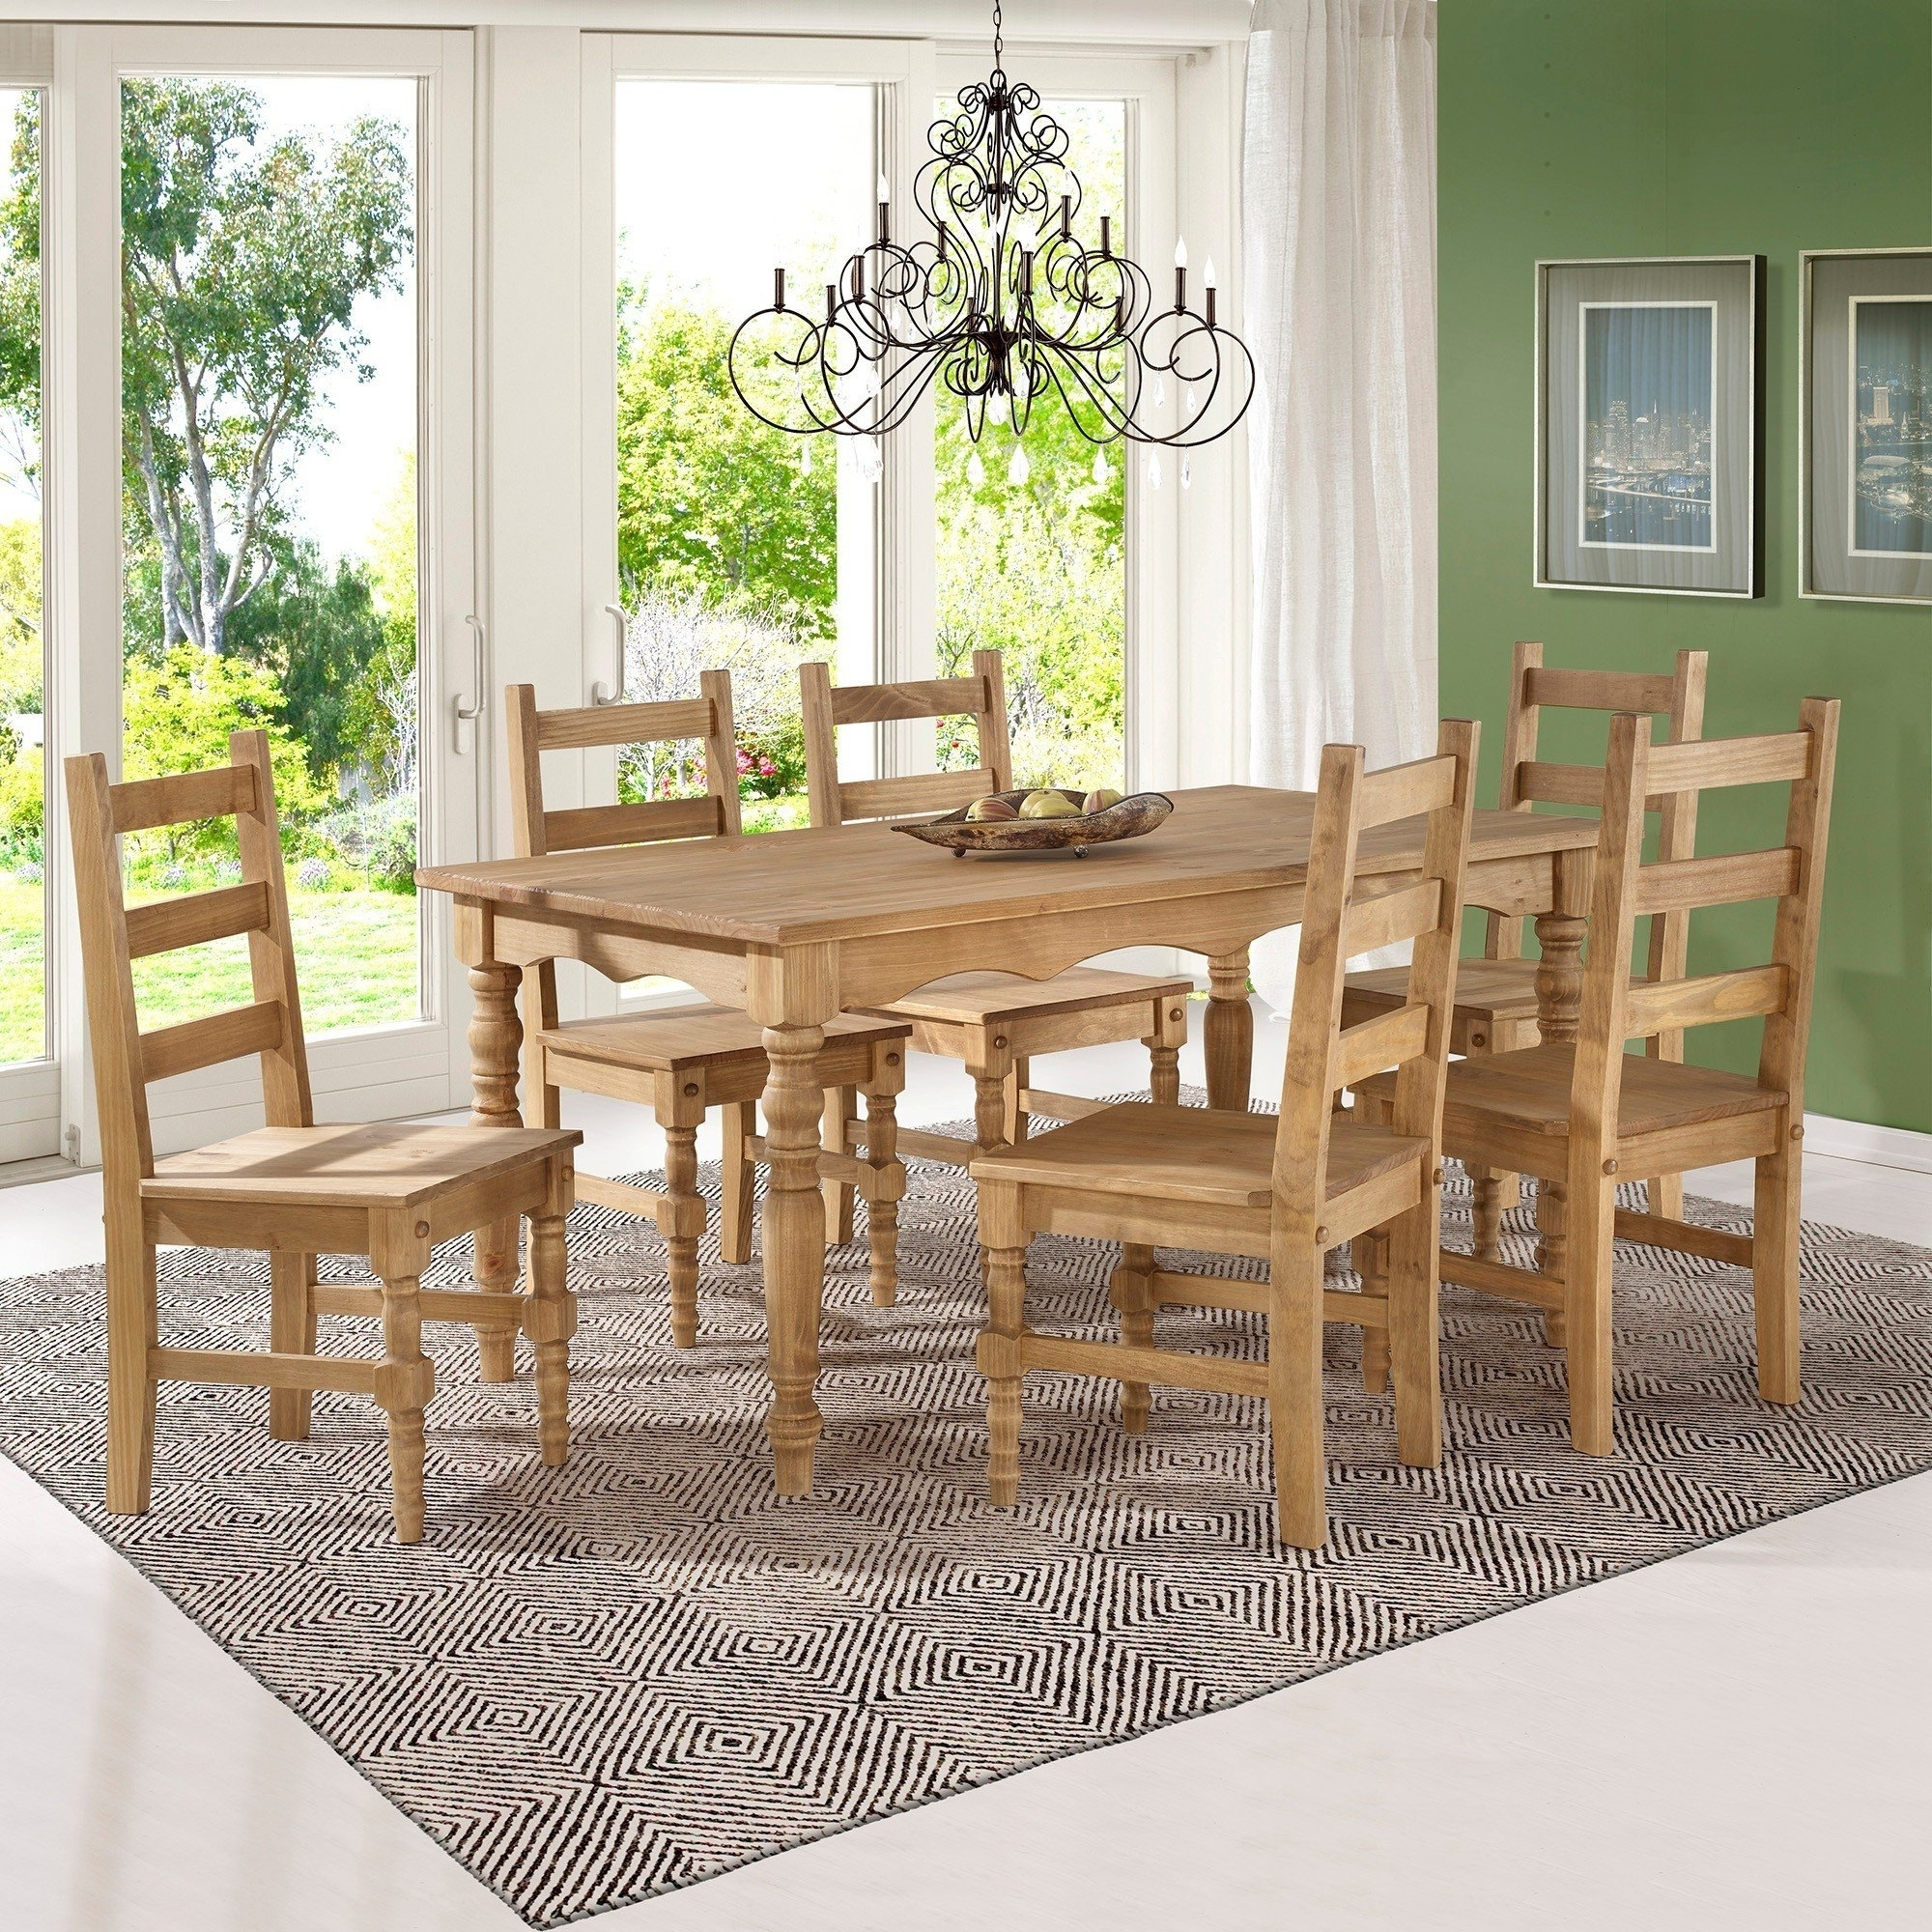 Shop Manhattan Comfort Jay 7 Piece Solid Wood Dining Set With 6 Intended For Recent Helms 7 Piece Rectangle Dining Sets With Side Chairs (View 18 of 25)